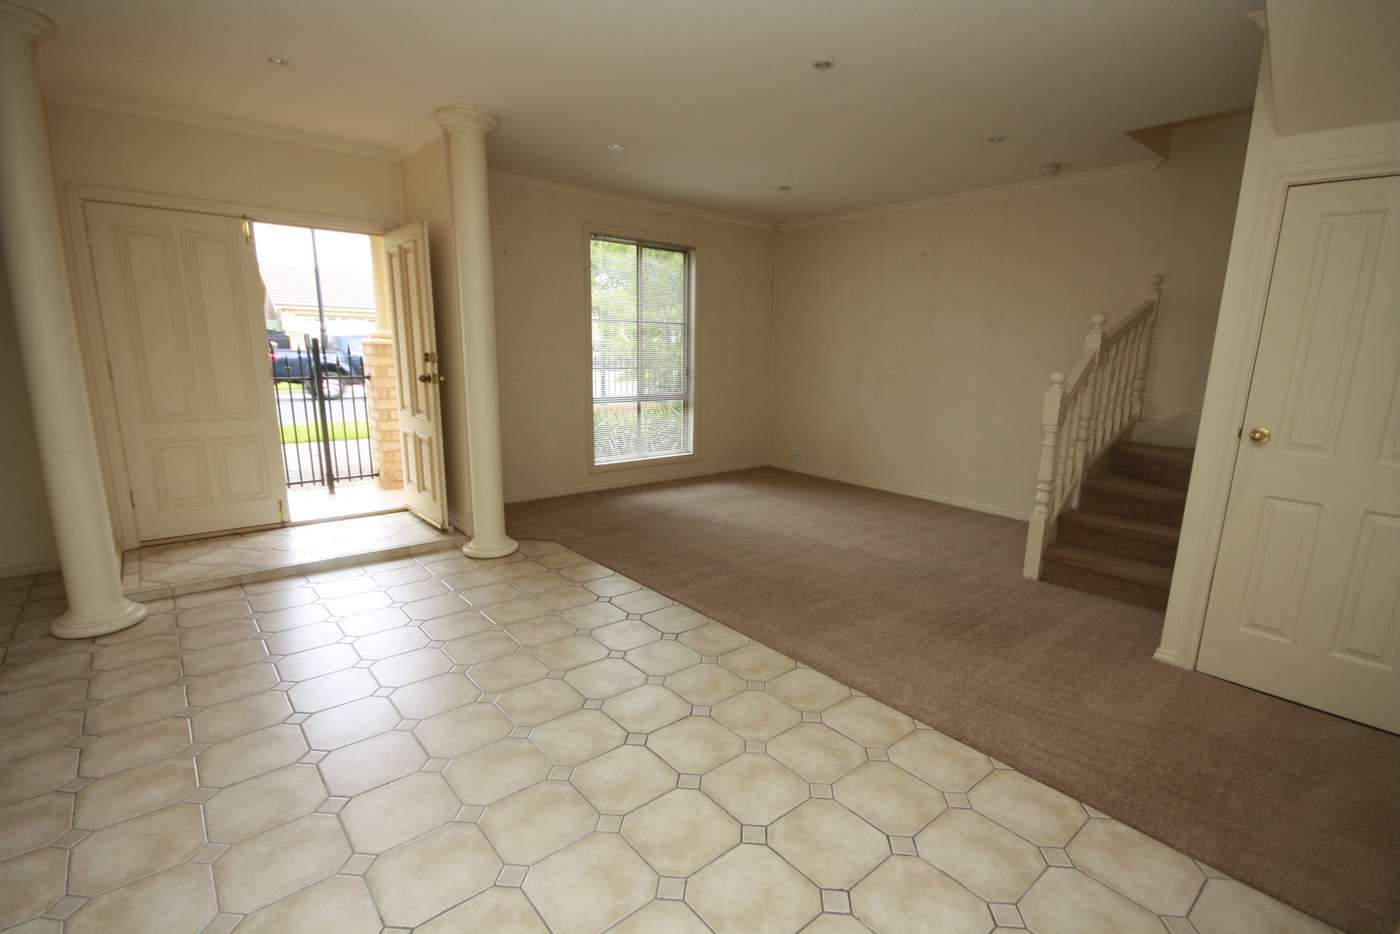 Sixth view of Homely townhouse listing, 5/6 Cobblers Court, Mawson Lakes SA 5095